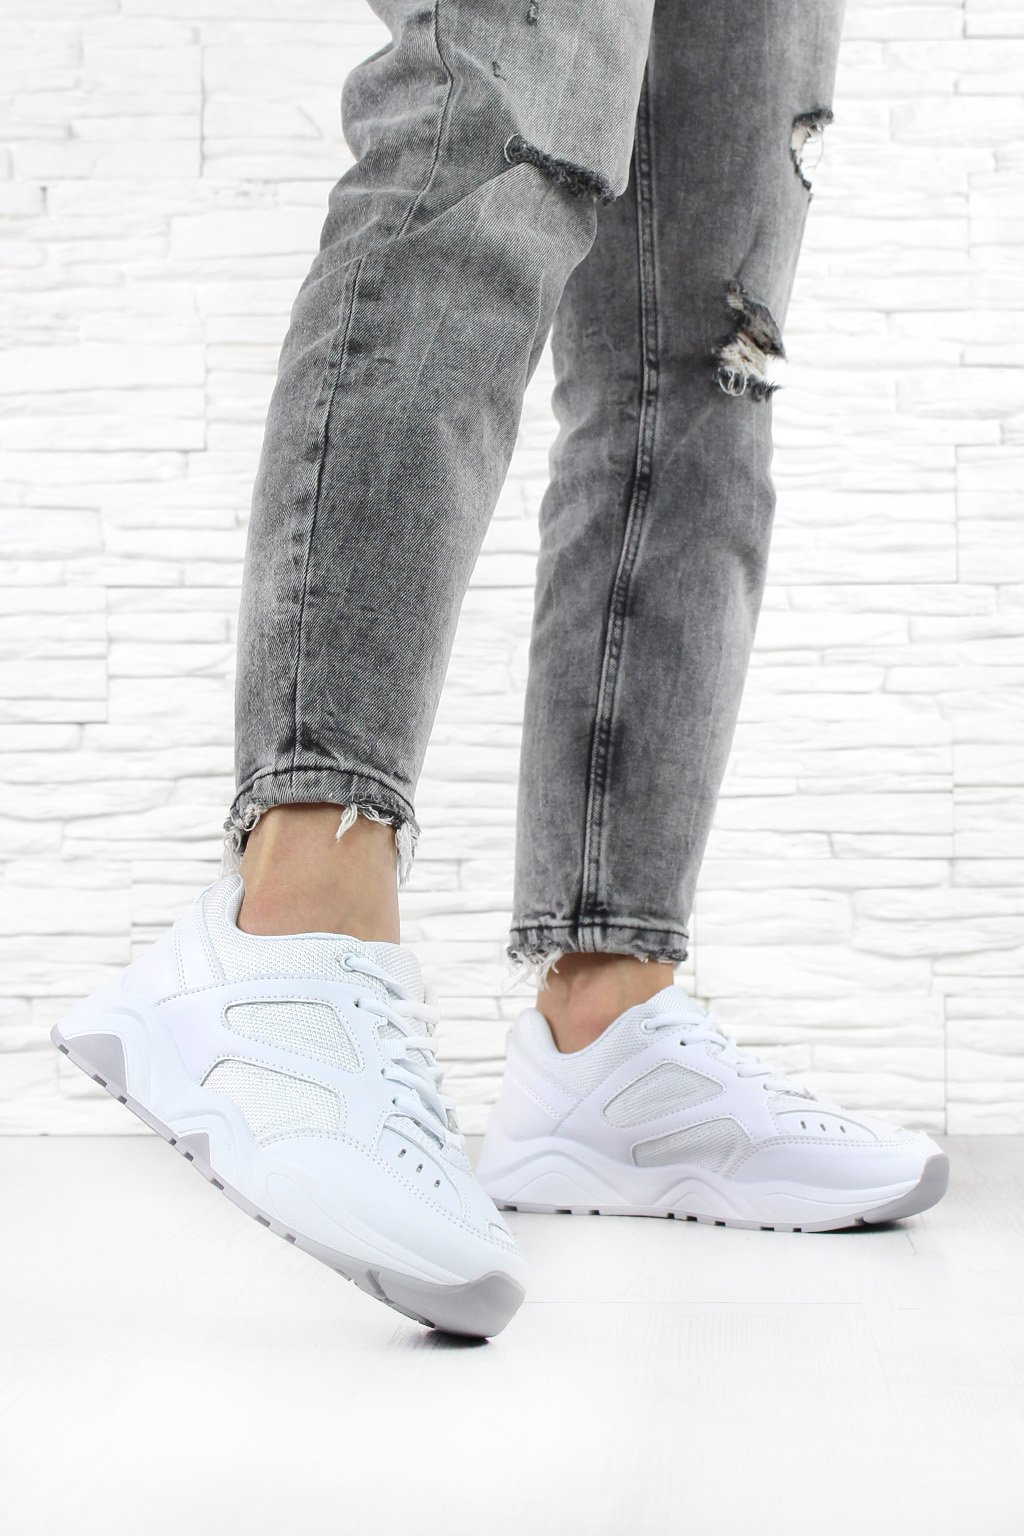 Sneakers shoes DS11905WH (2)